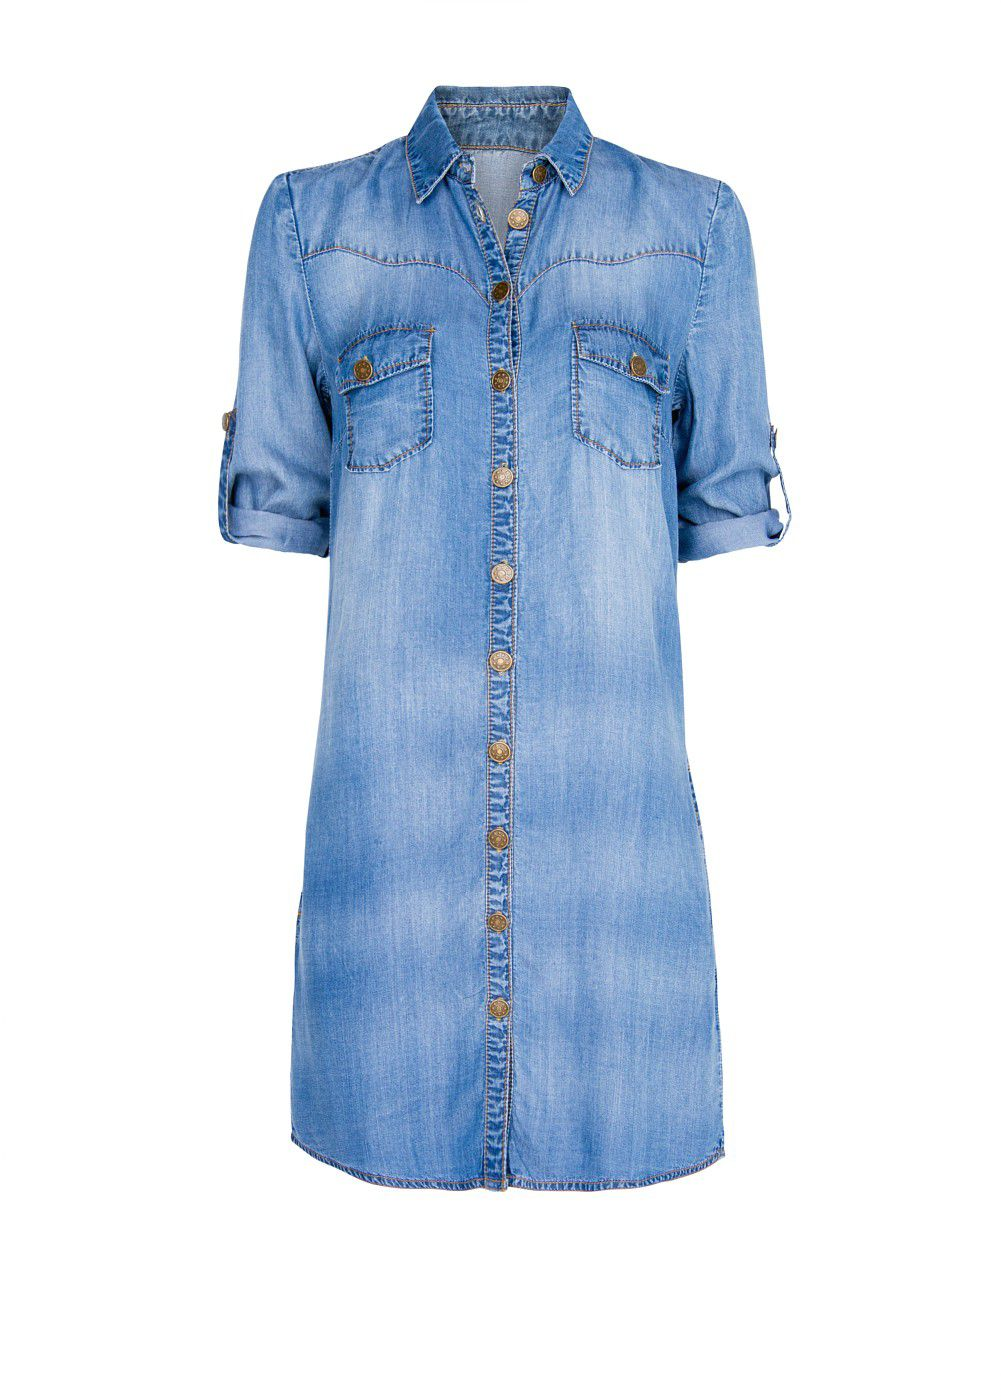 Shop denim shirt on the official Wrangler® website. Search our inventory for denim shirt or browse our selection of legendary denim and classic Western wear apparel.